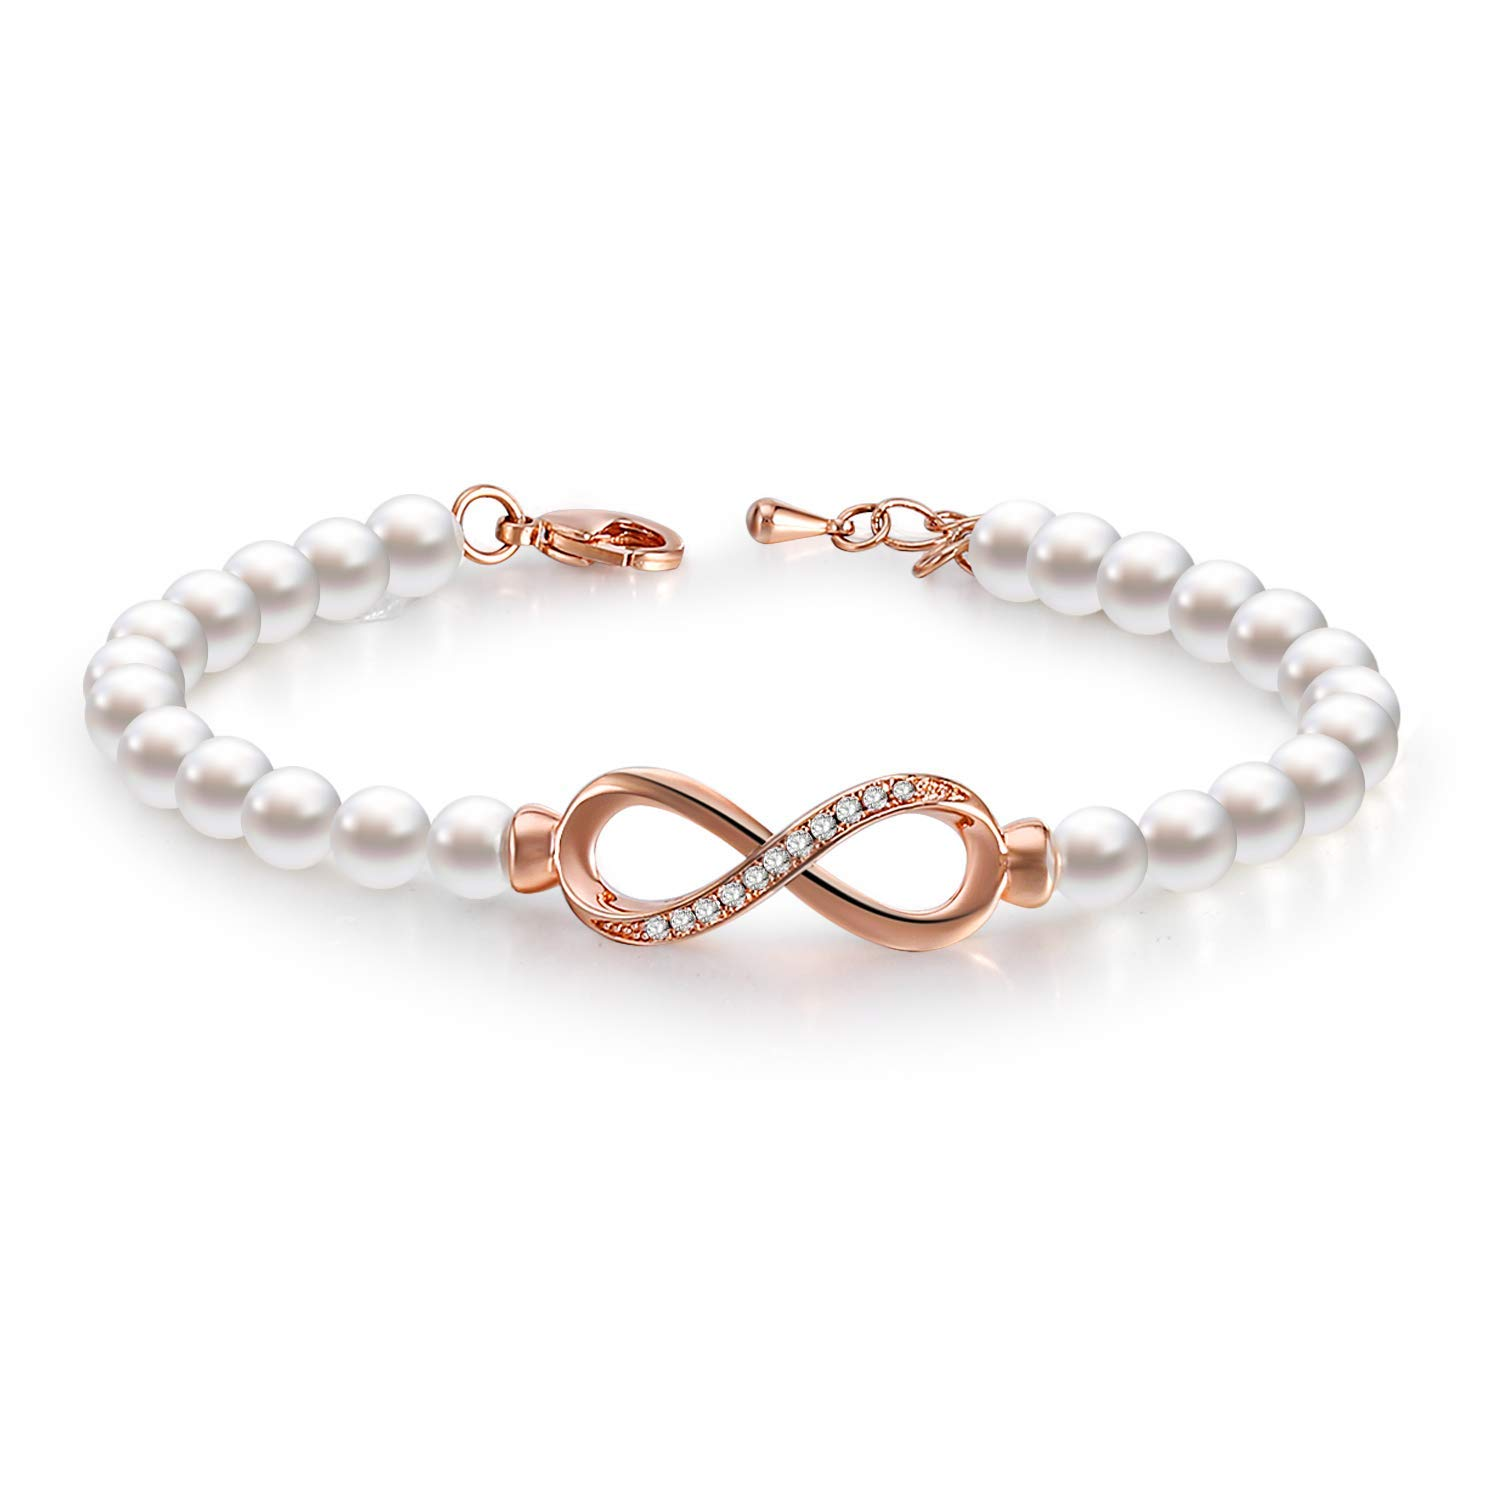 Crystals Jewelry Bridesmaids Bridal Collection with Luxury Gift Box GEORGE /· SMITH Forever Elegance Adjustable Infinity Freshwater Cultured Pearl Bracelet for Women